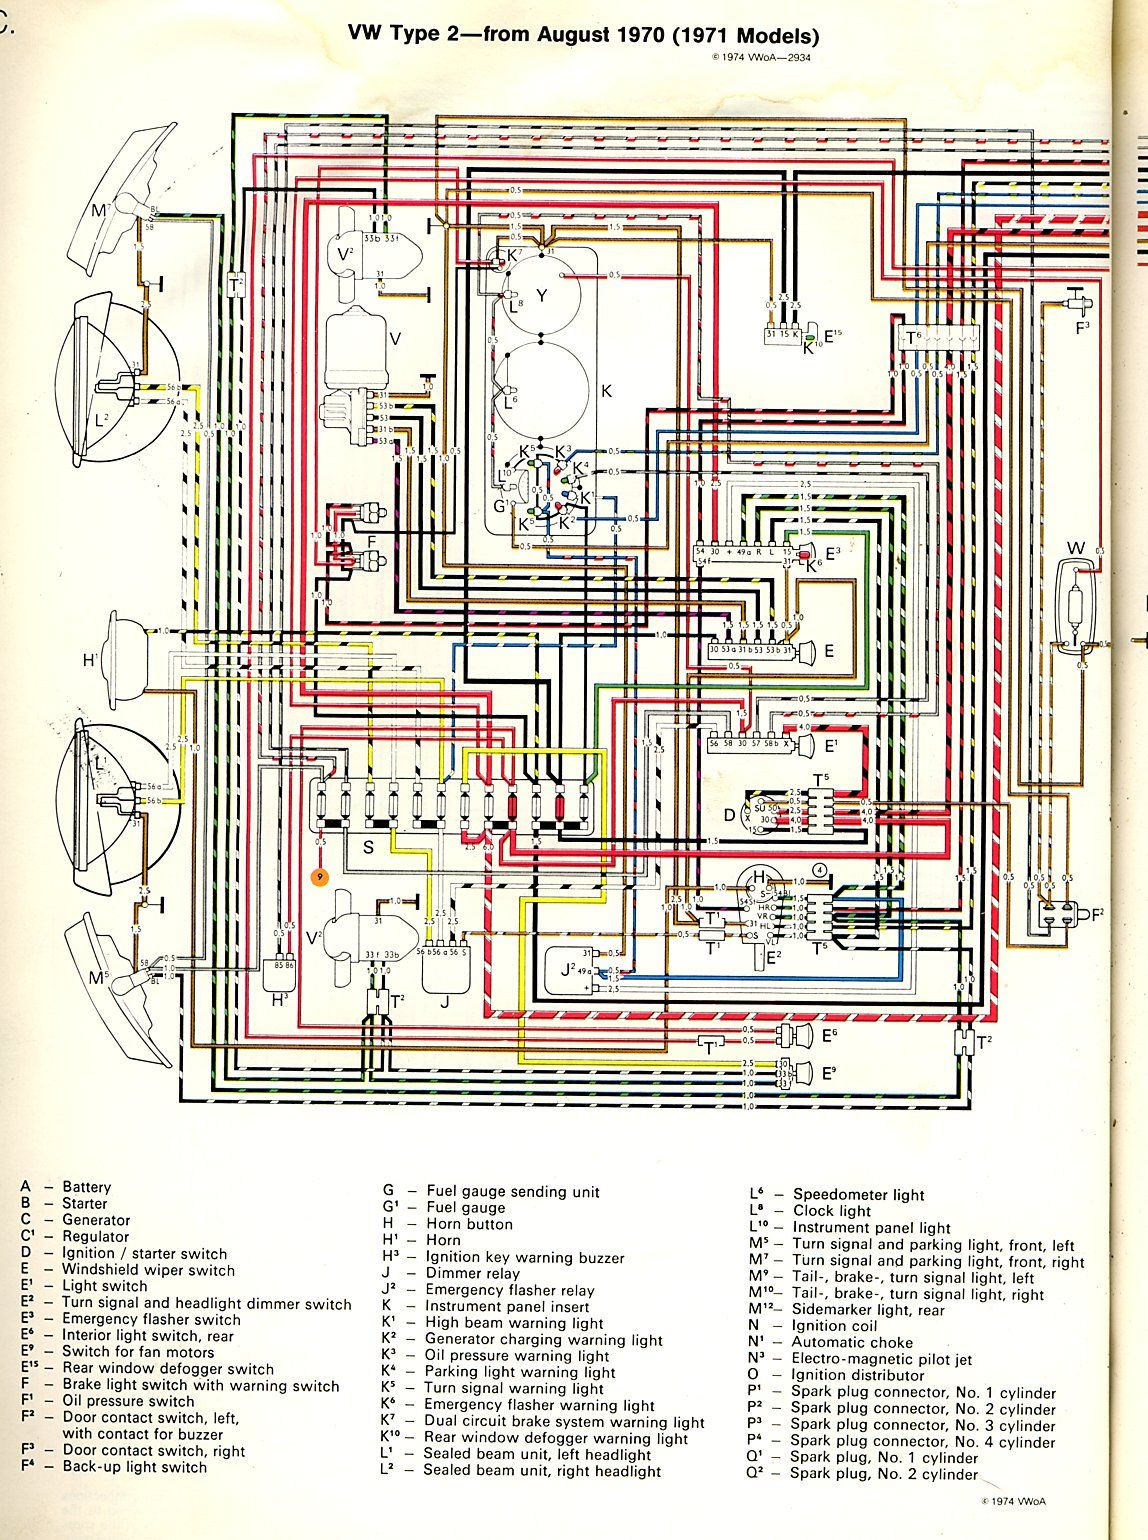 26730f3f6ceb3f1e1b50646c57249616 1971 bus wiring diagram thegoldenbug com stuff to try vw bus samba wiring diagram at bayanpartner.co